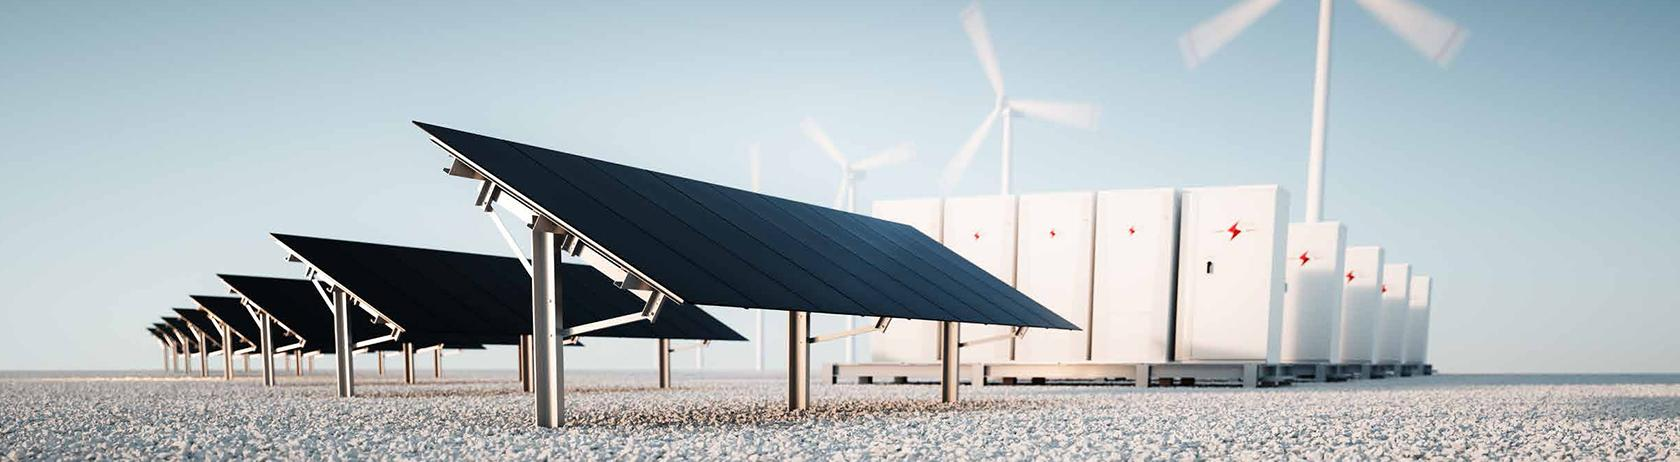 Battery energy storage system for wind and solar energy